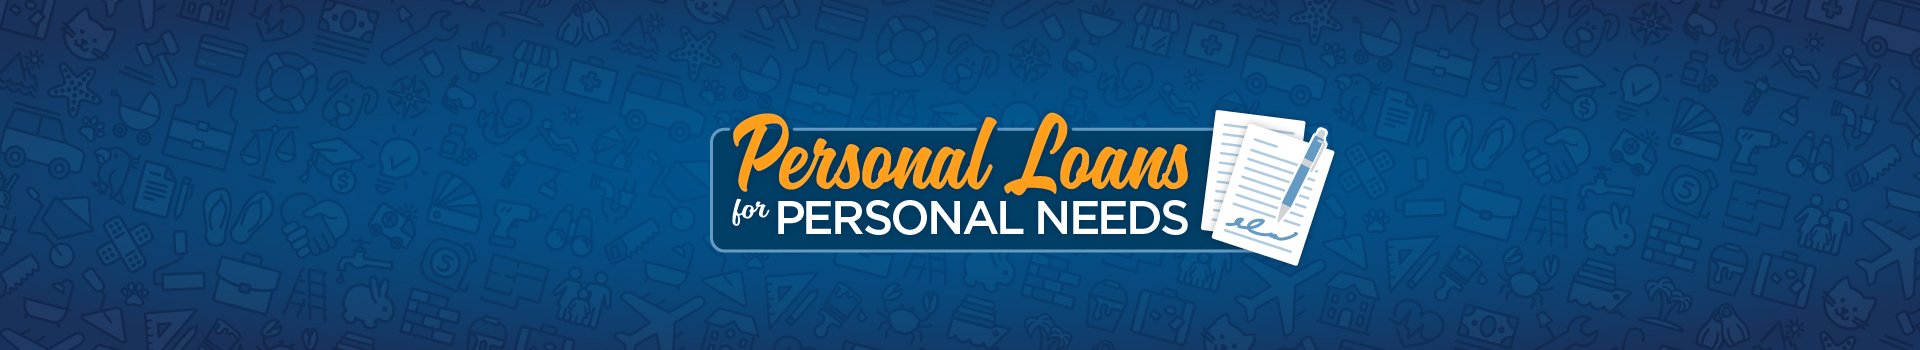 Personal Loans - America First Credit Union